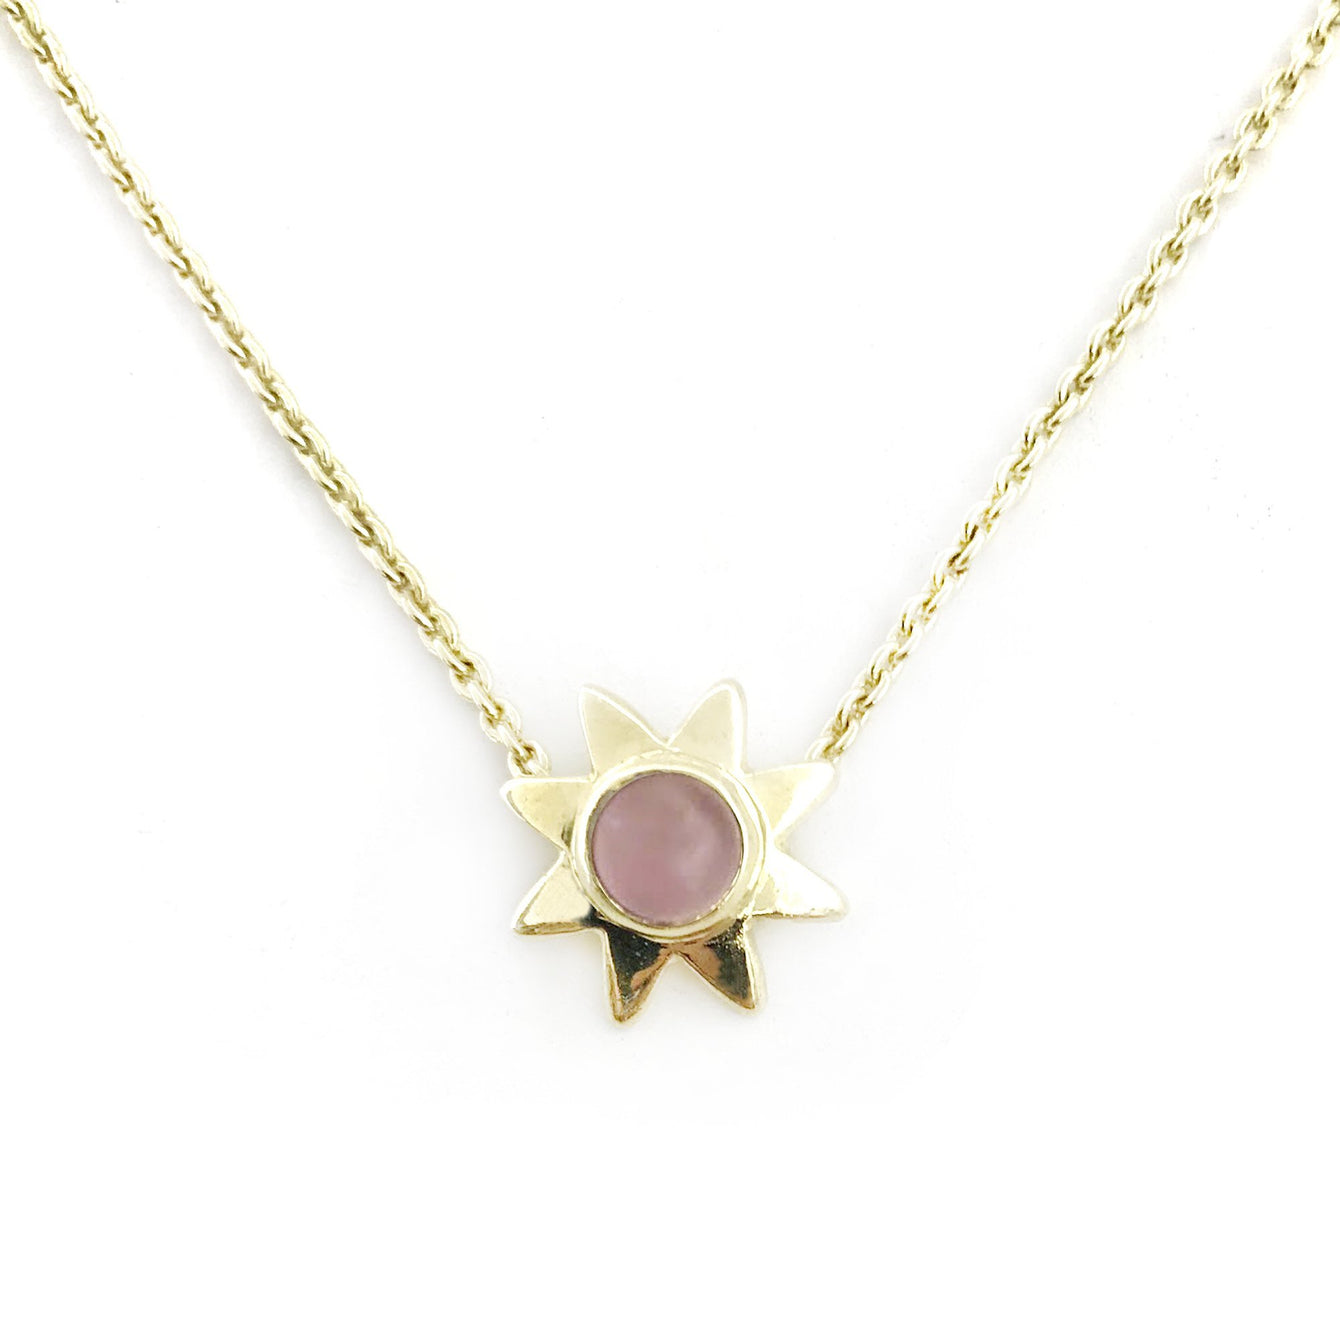 Starr Genuine Gemstone Pendant Necklaces-Women - Jewelry - Necklaces-ADDISON WEEKS-Pink Opal-Peccadilly